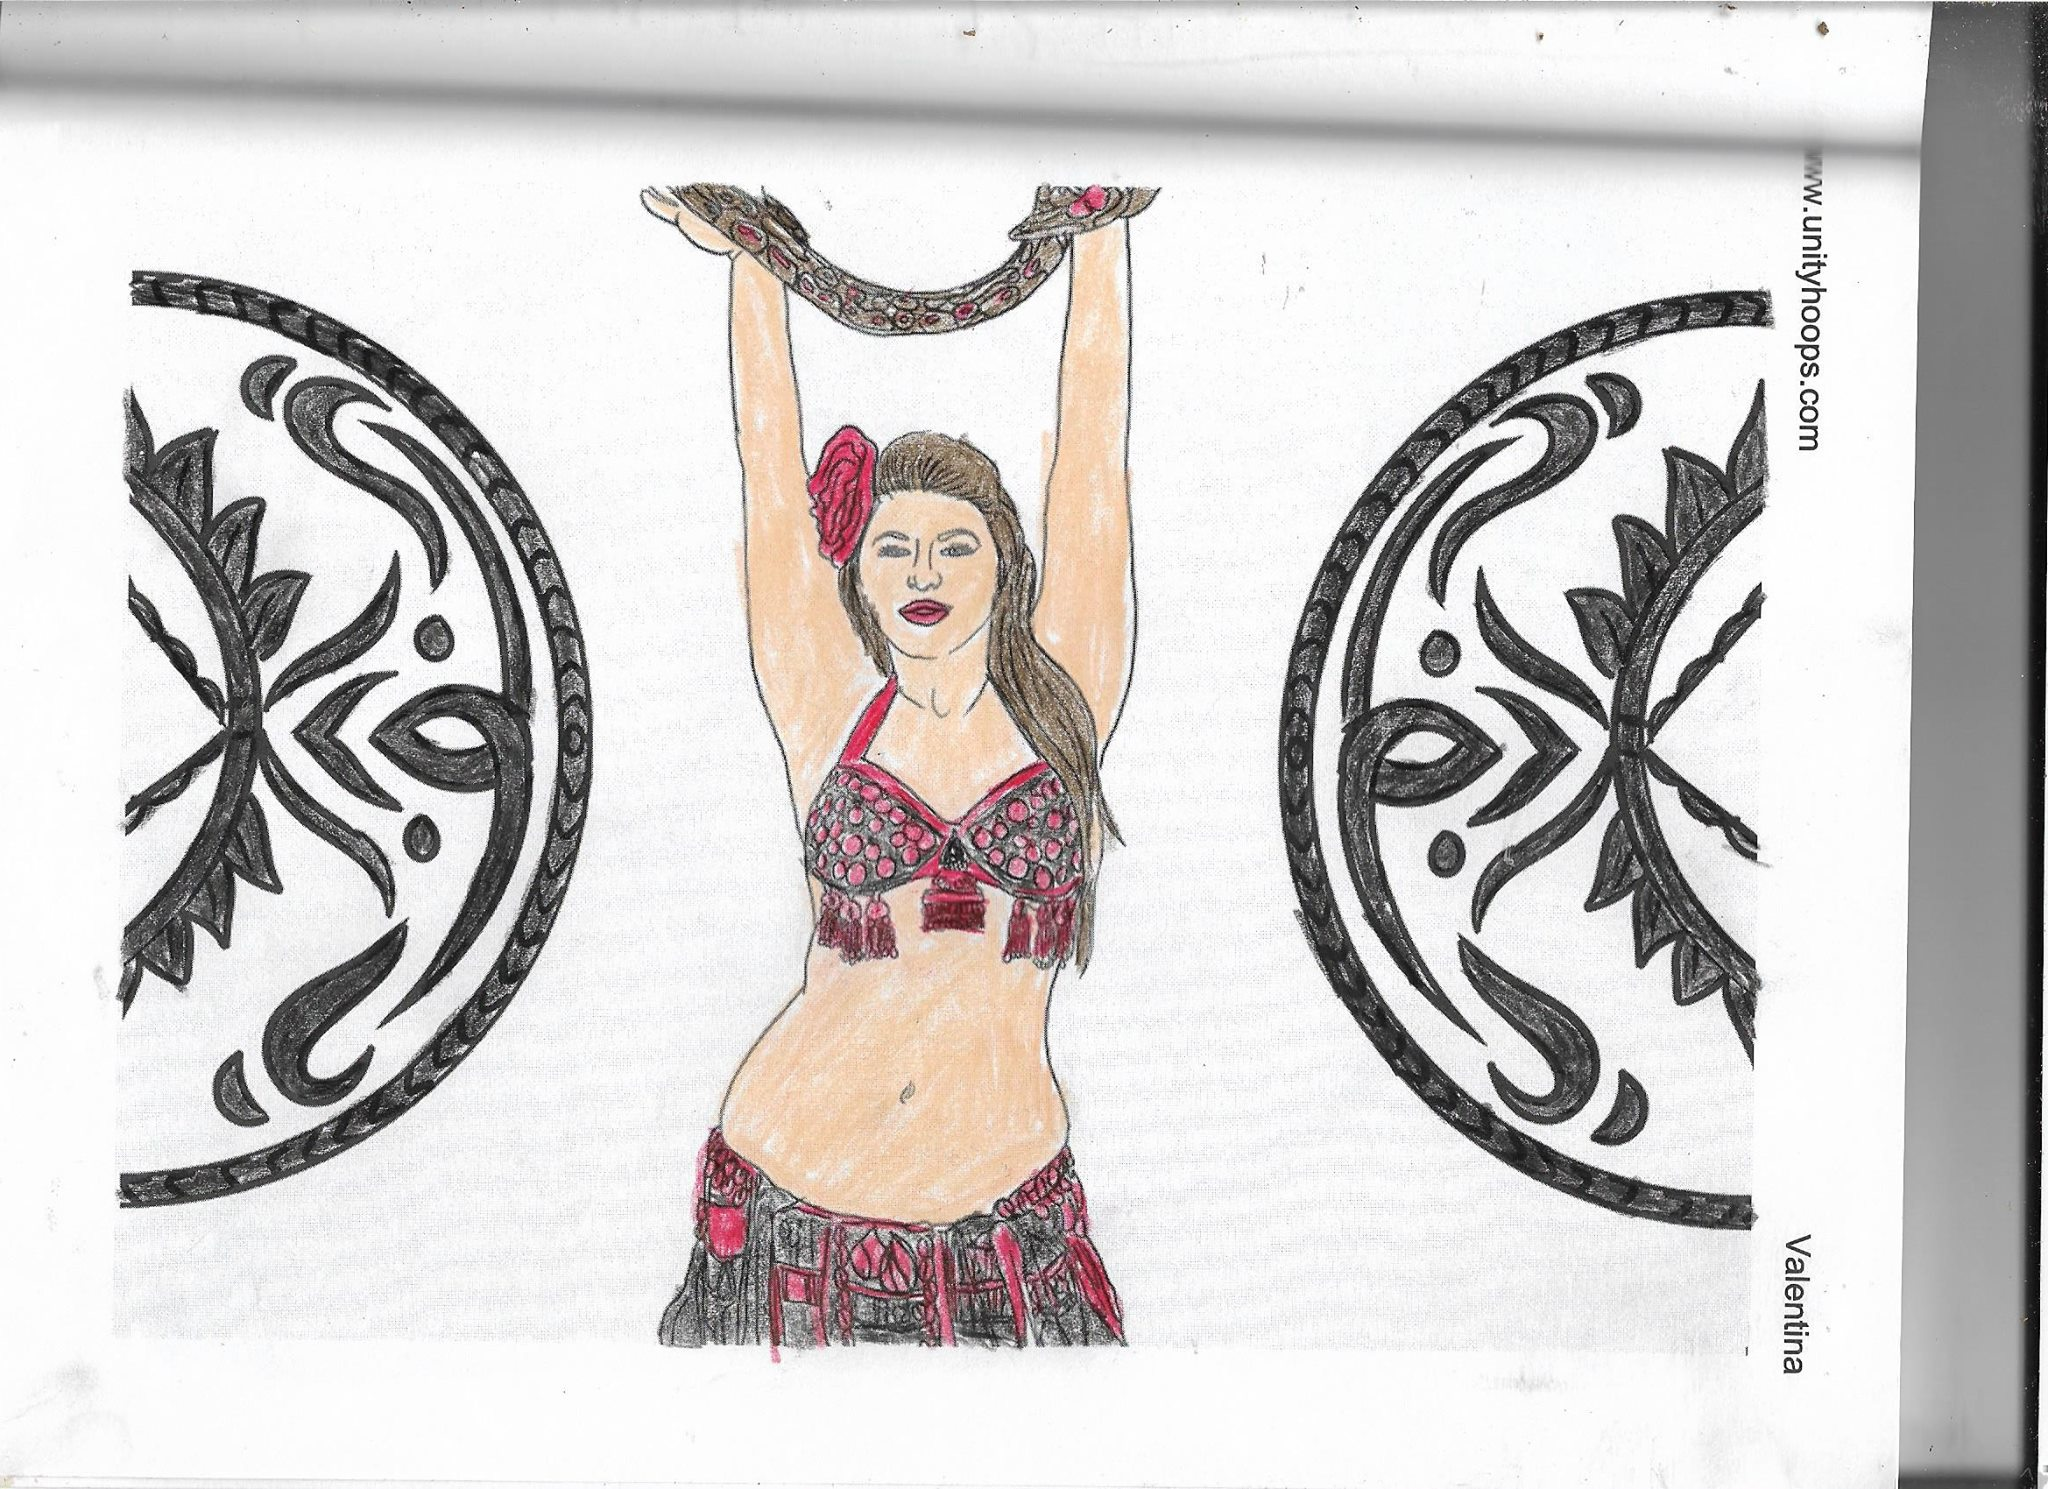 Additional Images: Beautiful Belly Dancers Coloring Book #2